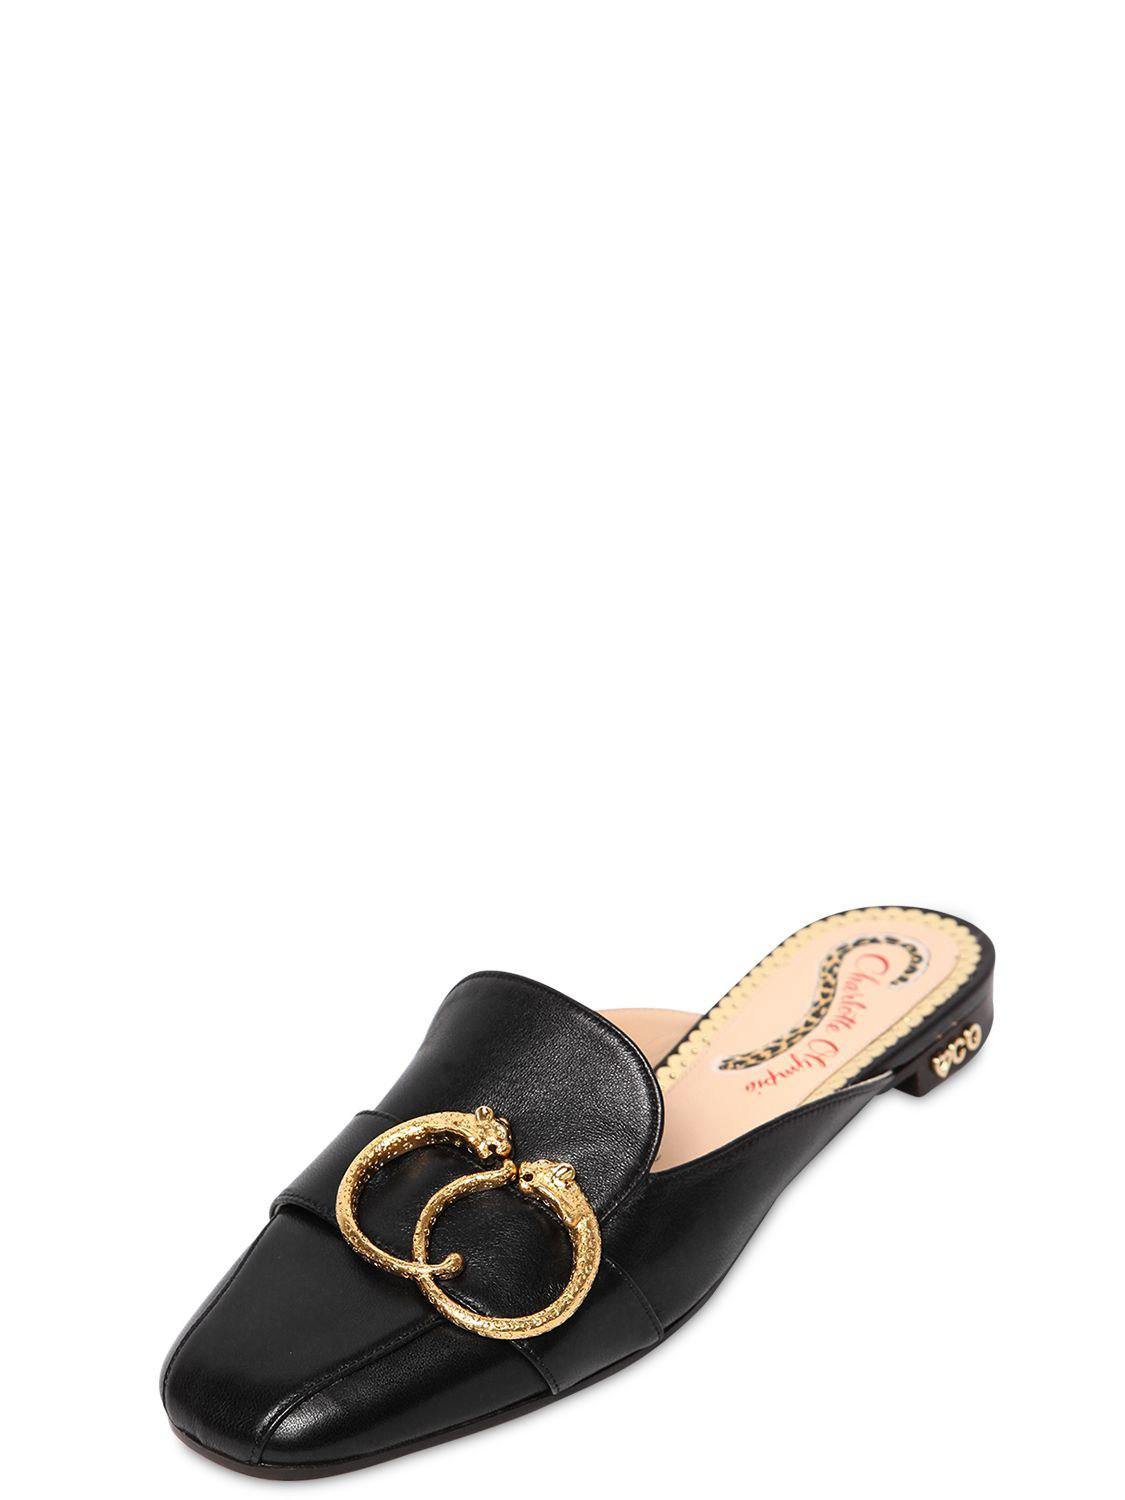 Charlotte Olympia 10MM LEATHER MULES W/ BUCKLE Mwor1gR